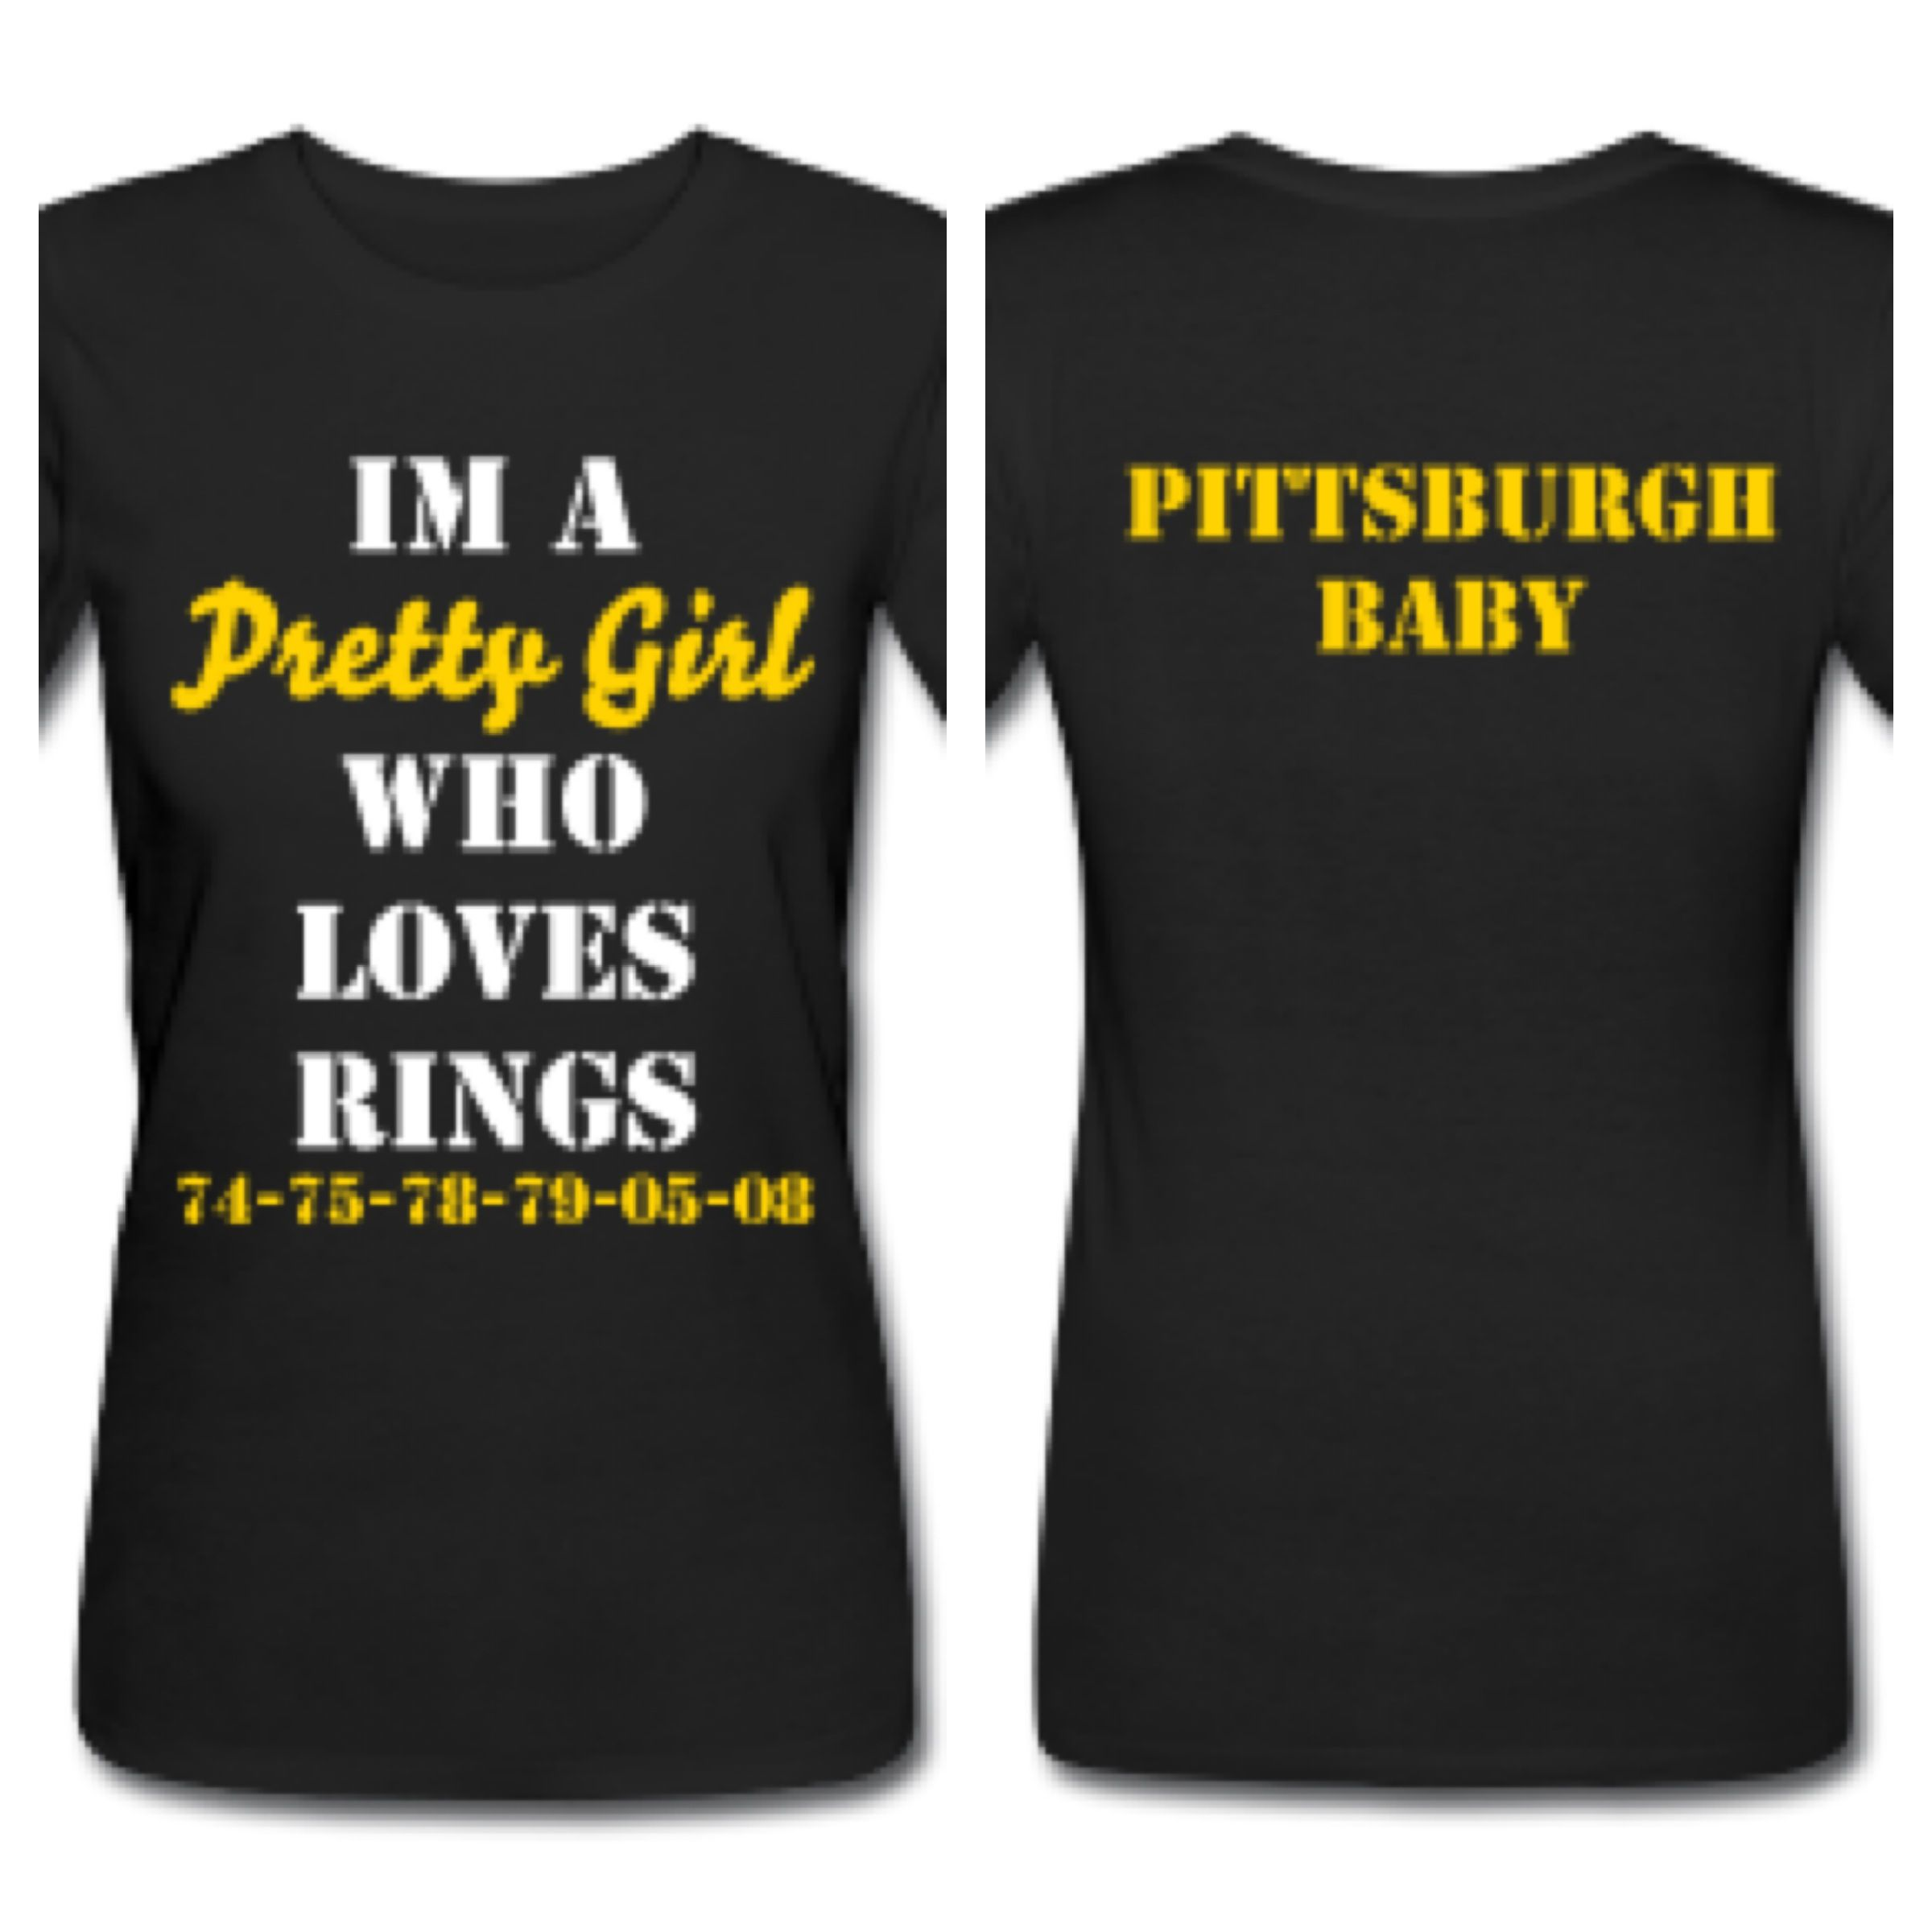 I\'m A Pretty Girl Who Loves Rings..... Superbowl Rings that is ...